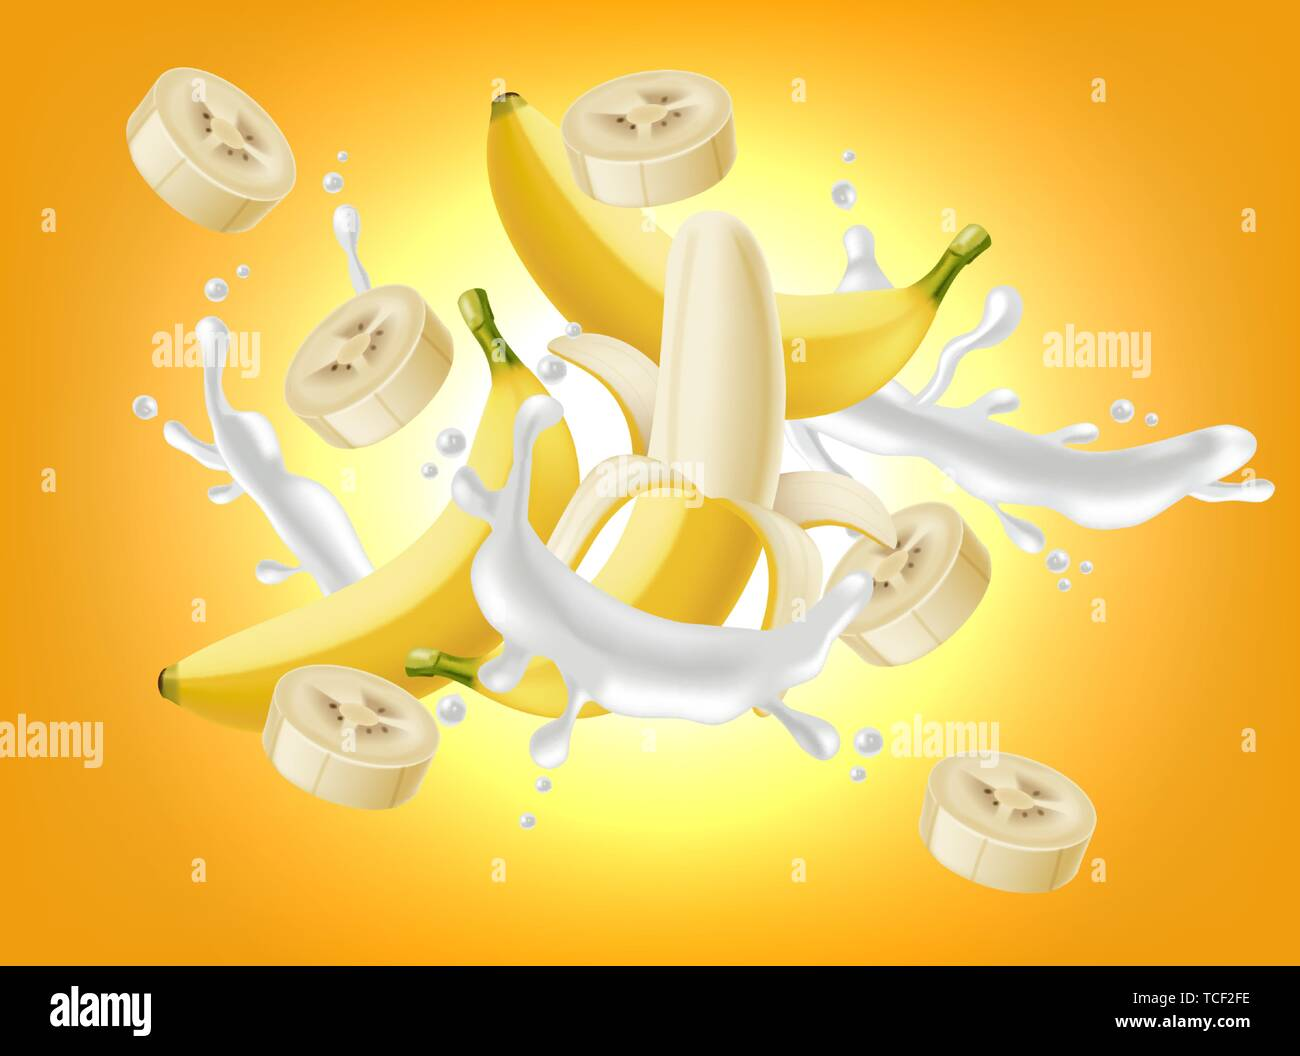 Banana splash Vector realistic  Yogurt or milk pourring